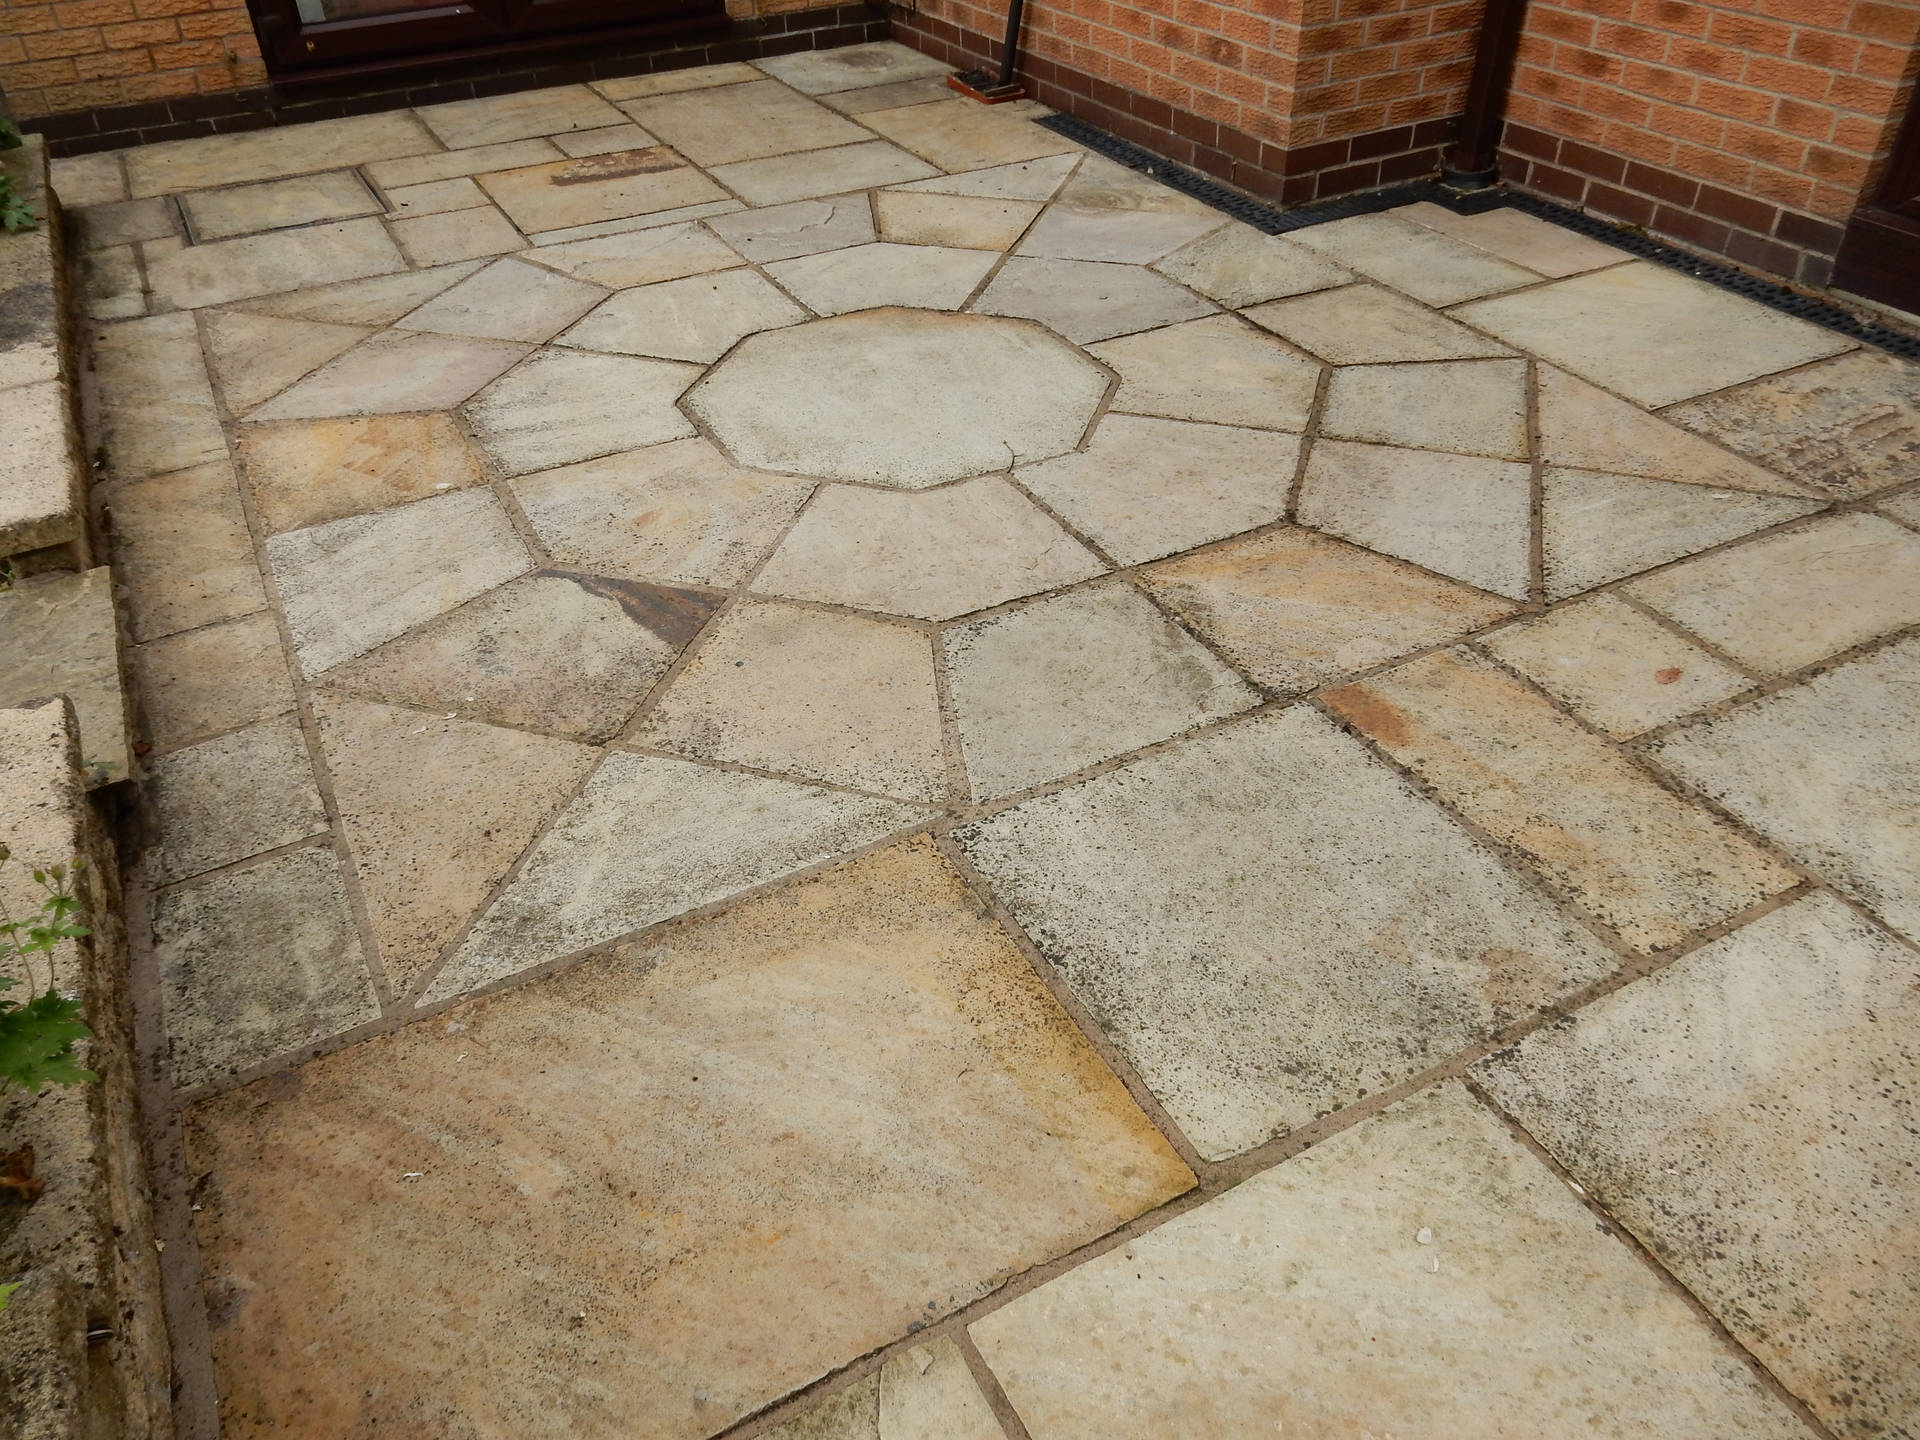 Indian Sandstone Before Cleaning